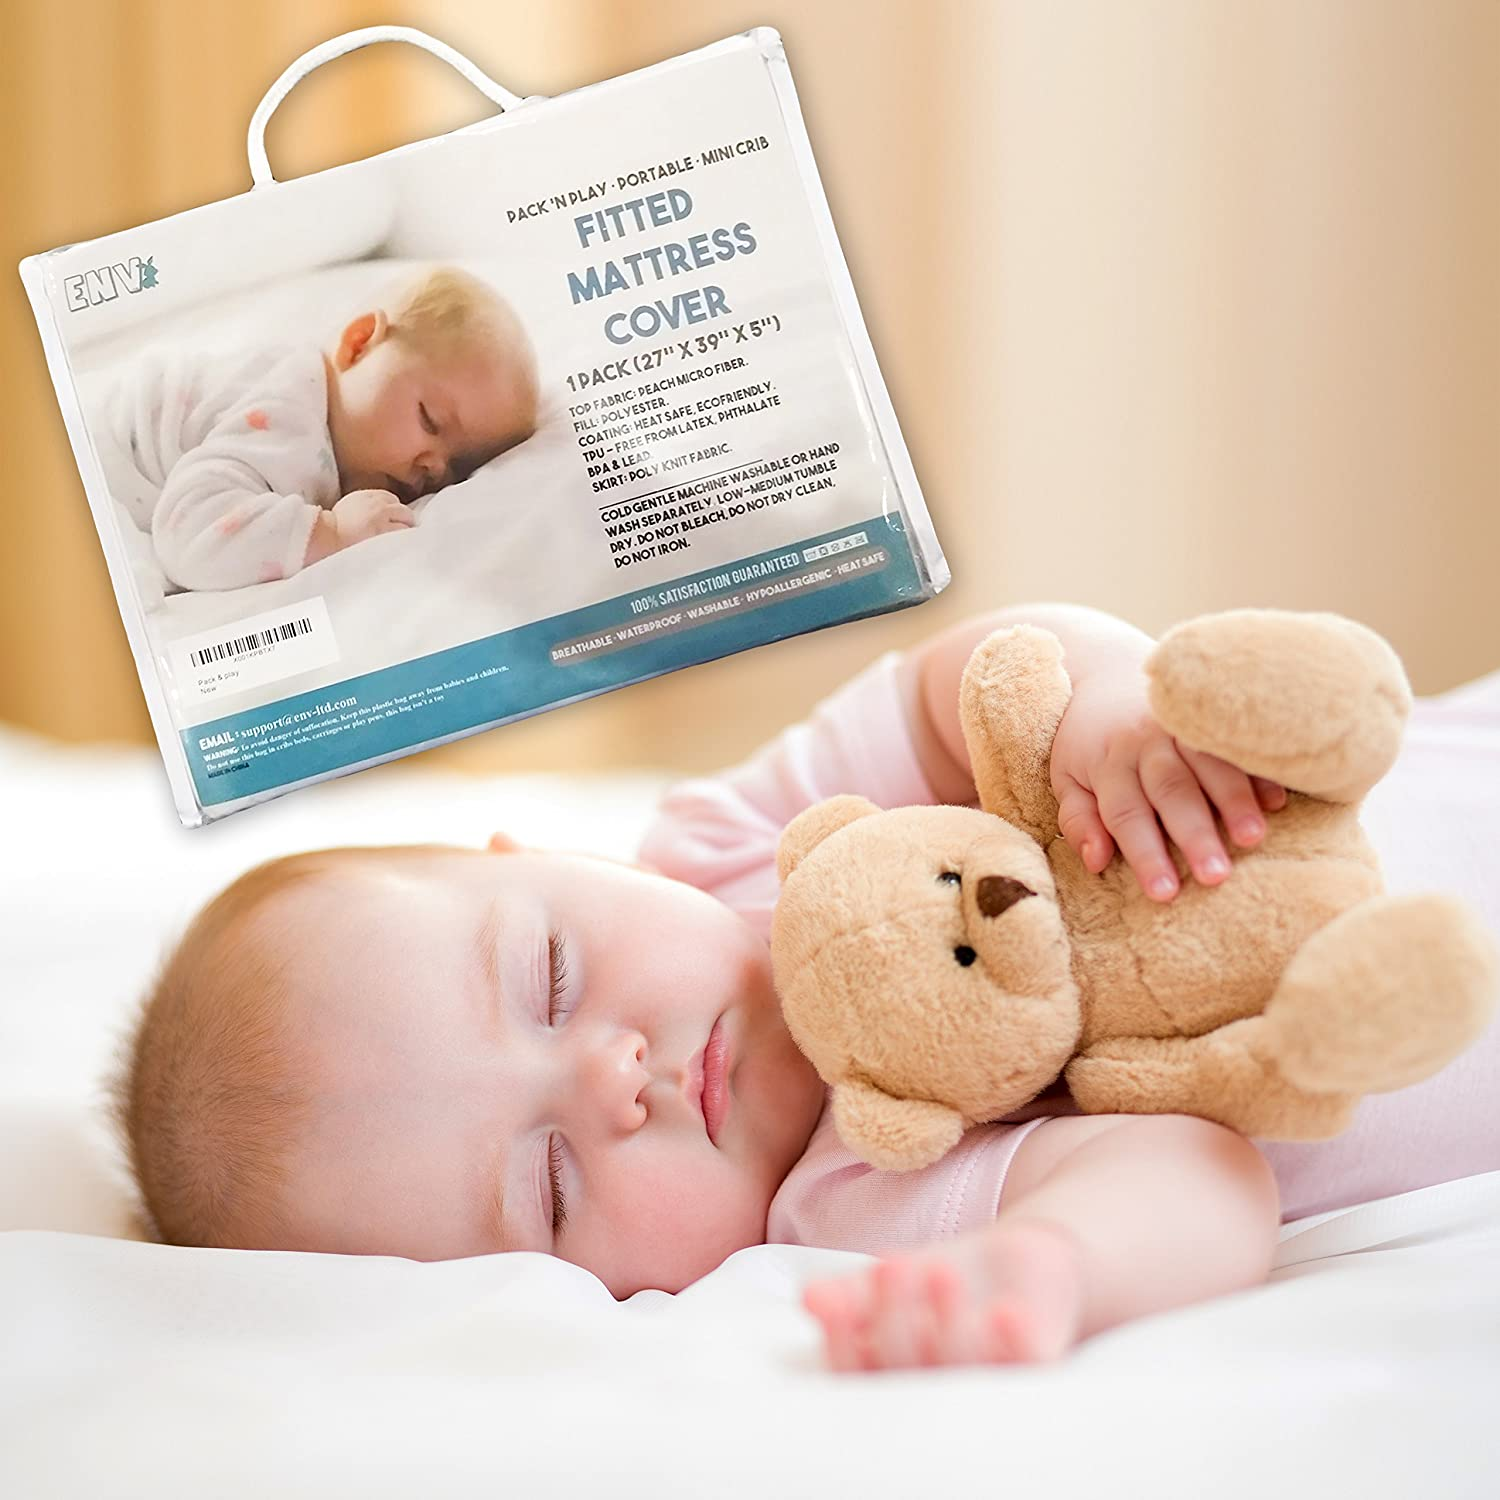 Crib Mattress Pad Cover for Baby Pack N Play, Fits All Portable Cribs, Mini & Foldable Mattresses, Waterproof, Dryer Safe, Cushioned & Comfy! Hypoallergenic, Toxin Free, Fitted Crib Protector! ENV Company